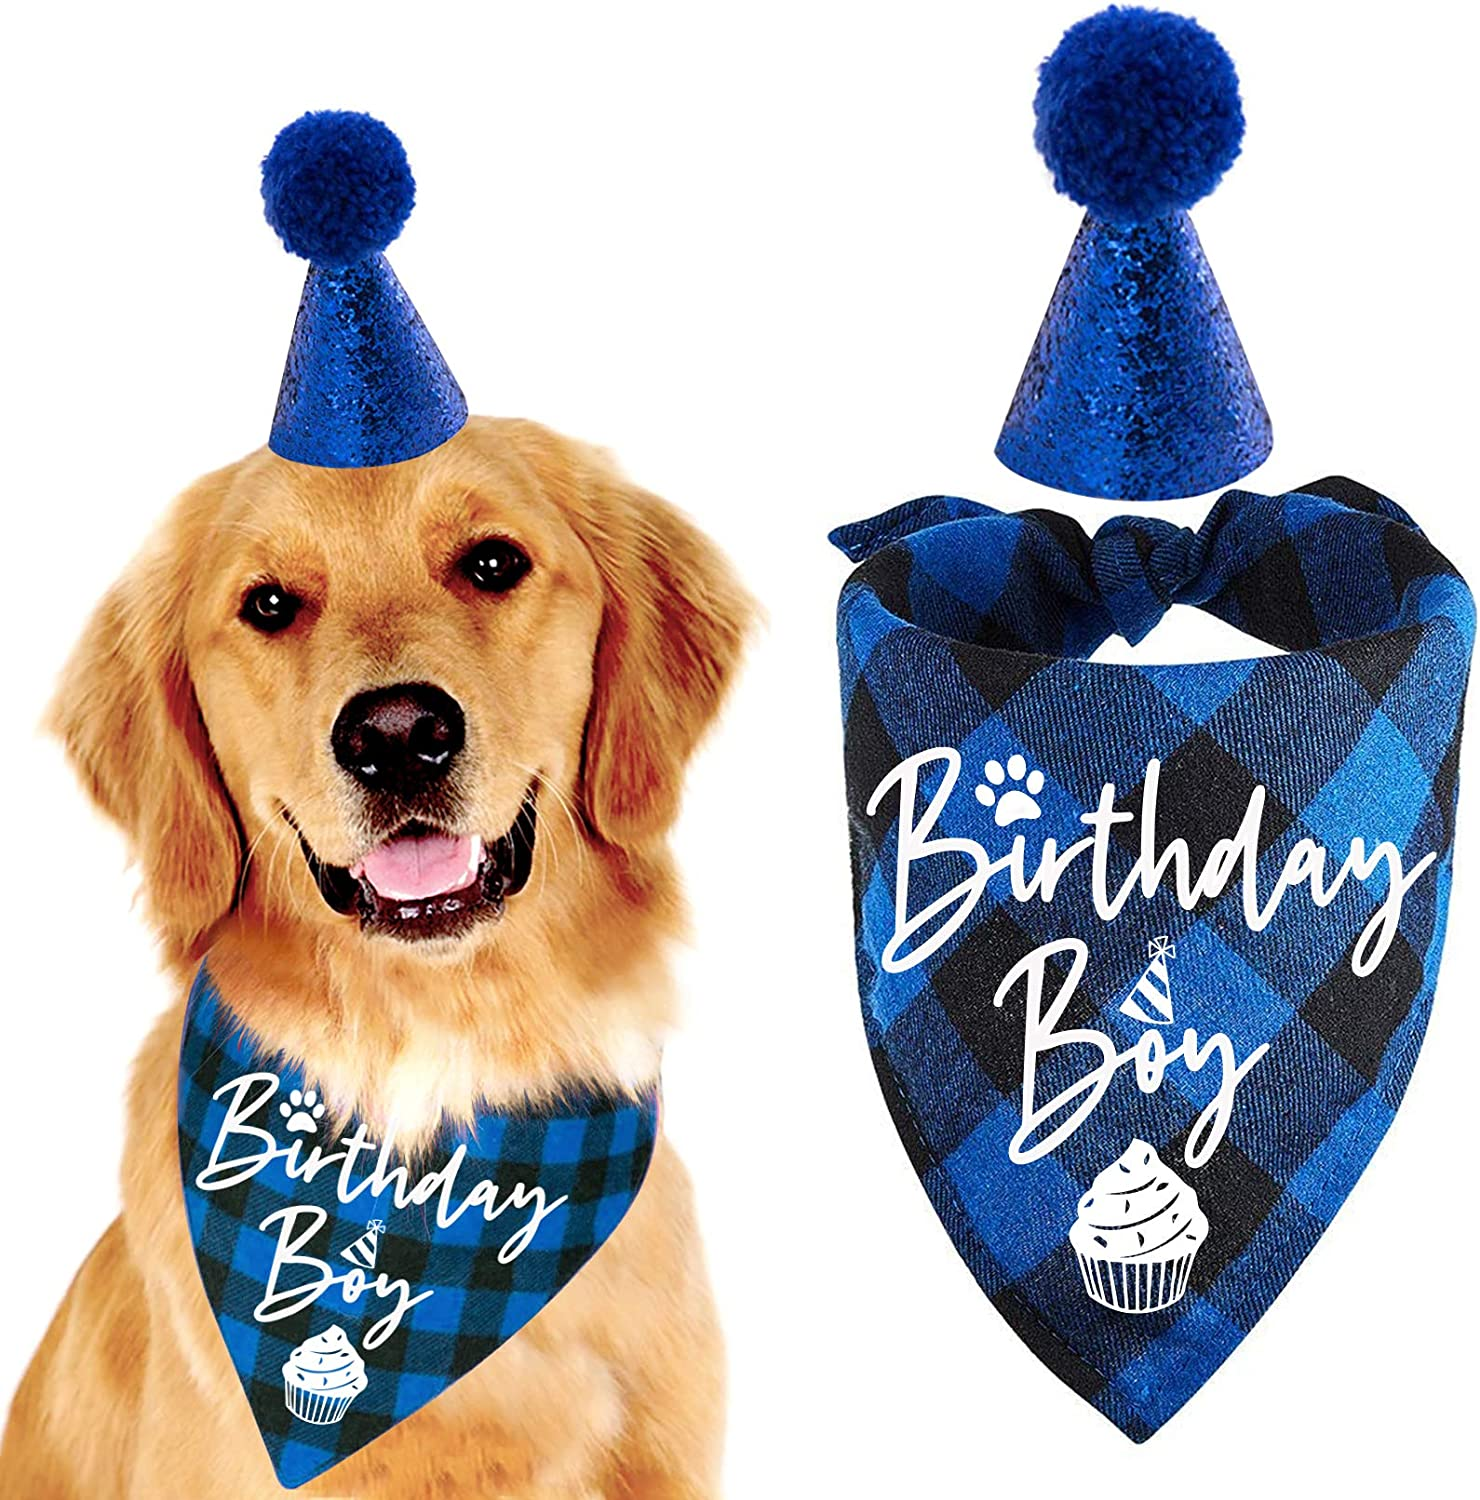 family Kitchen Classic Blue Plaid Dog with Pet Popular shop is New popularity the lowest price challenge Bandana Puppy